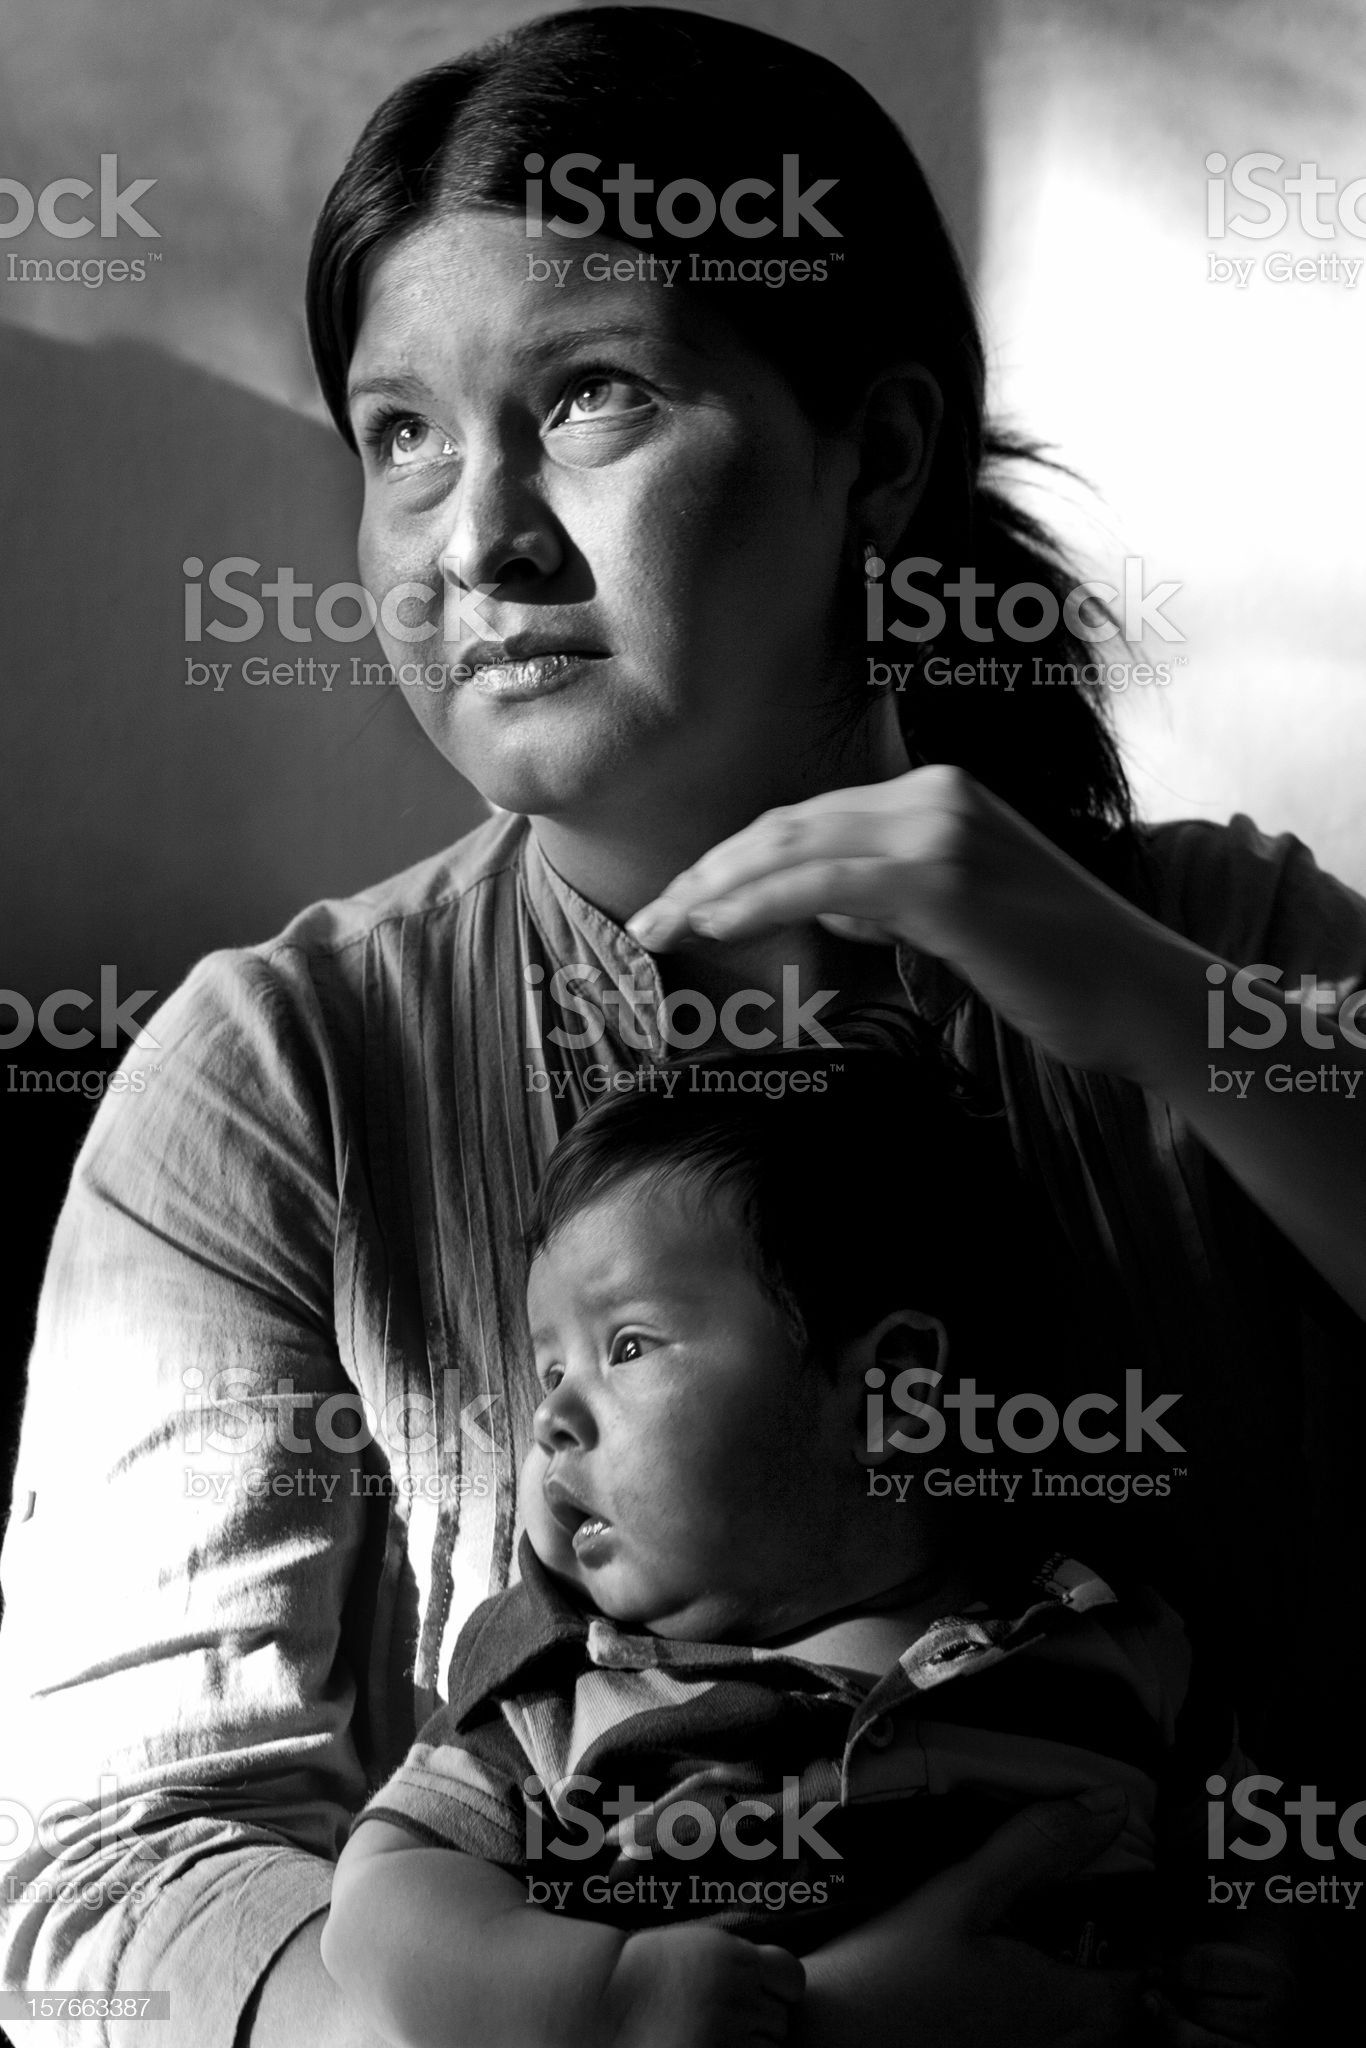 Devoted mother royalty-free stock photo